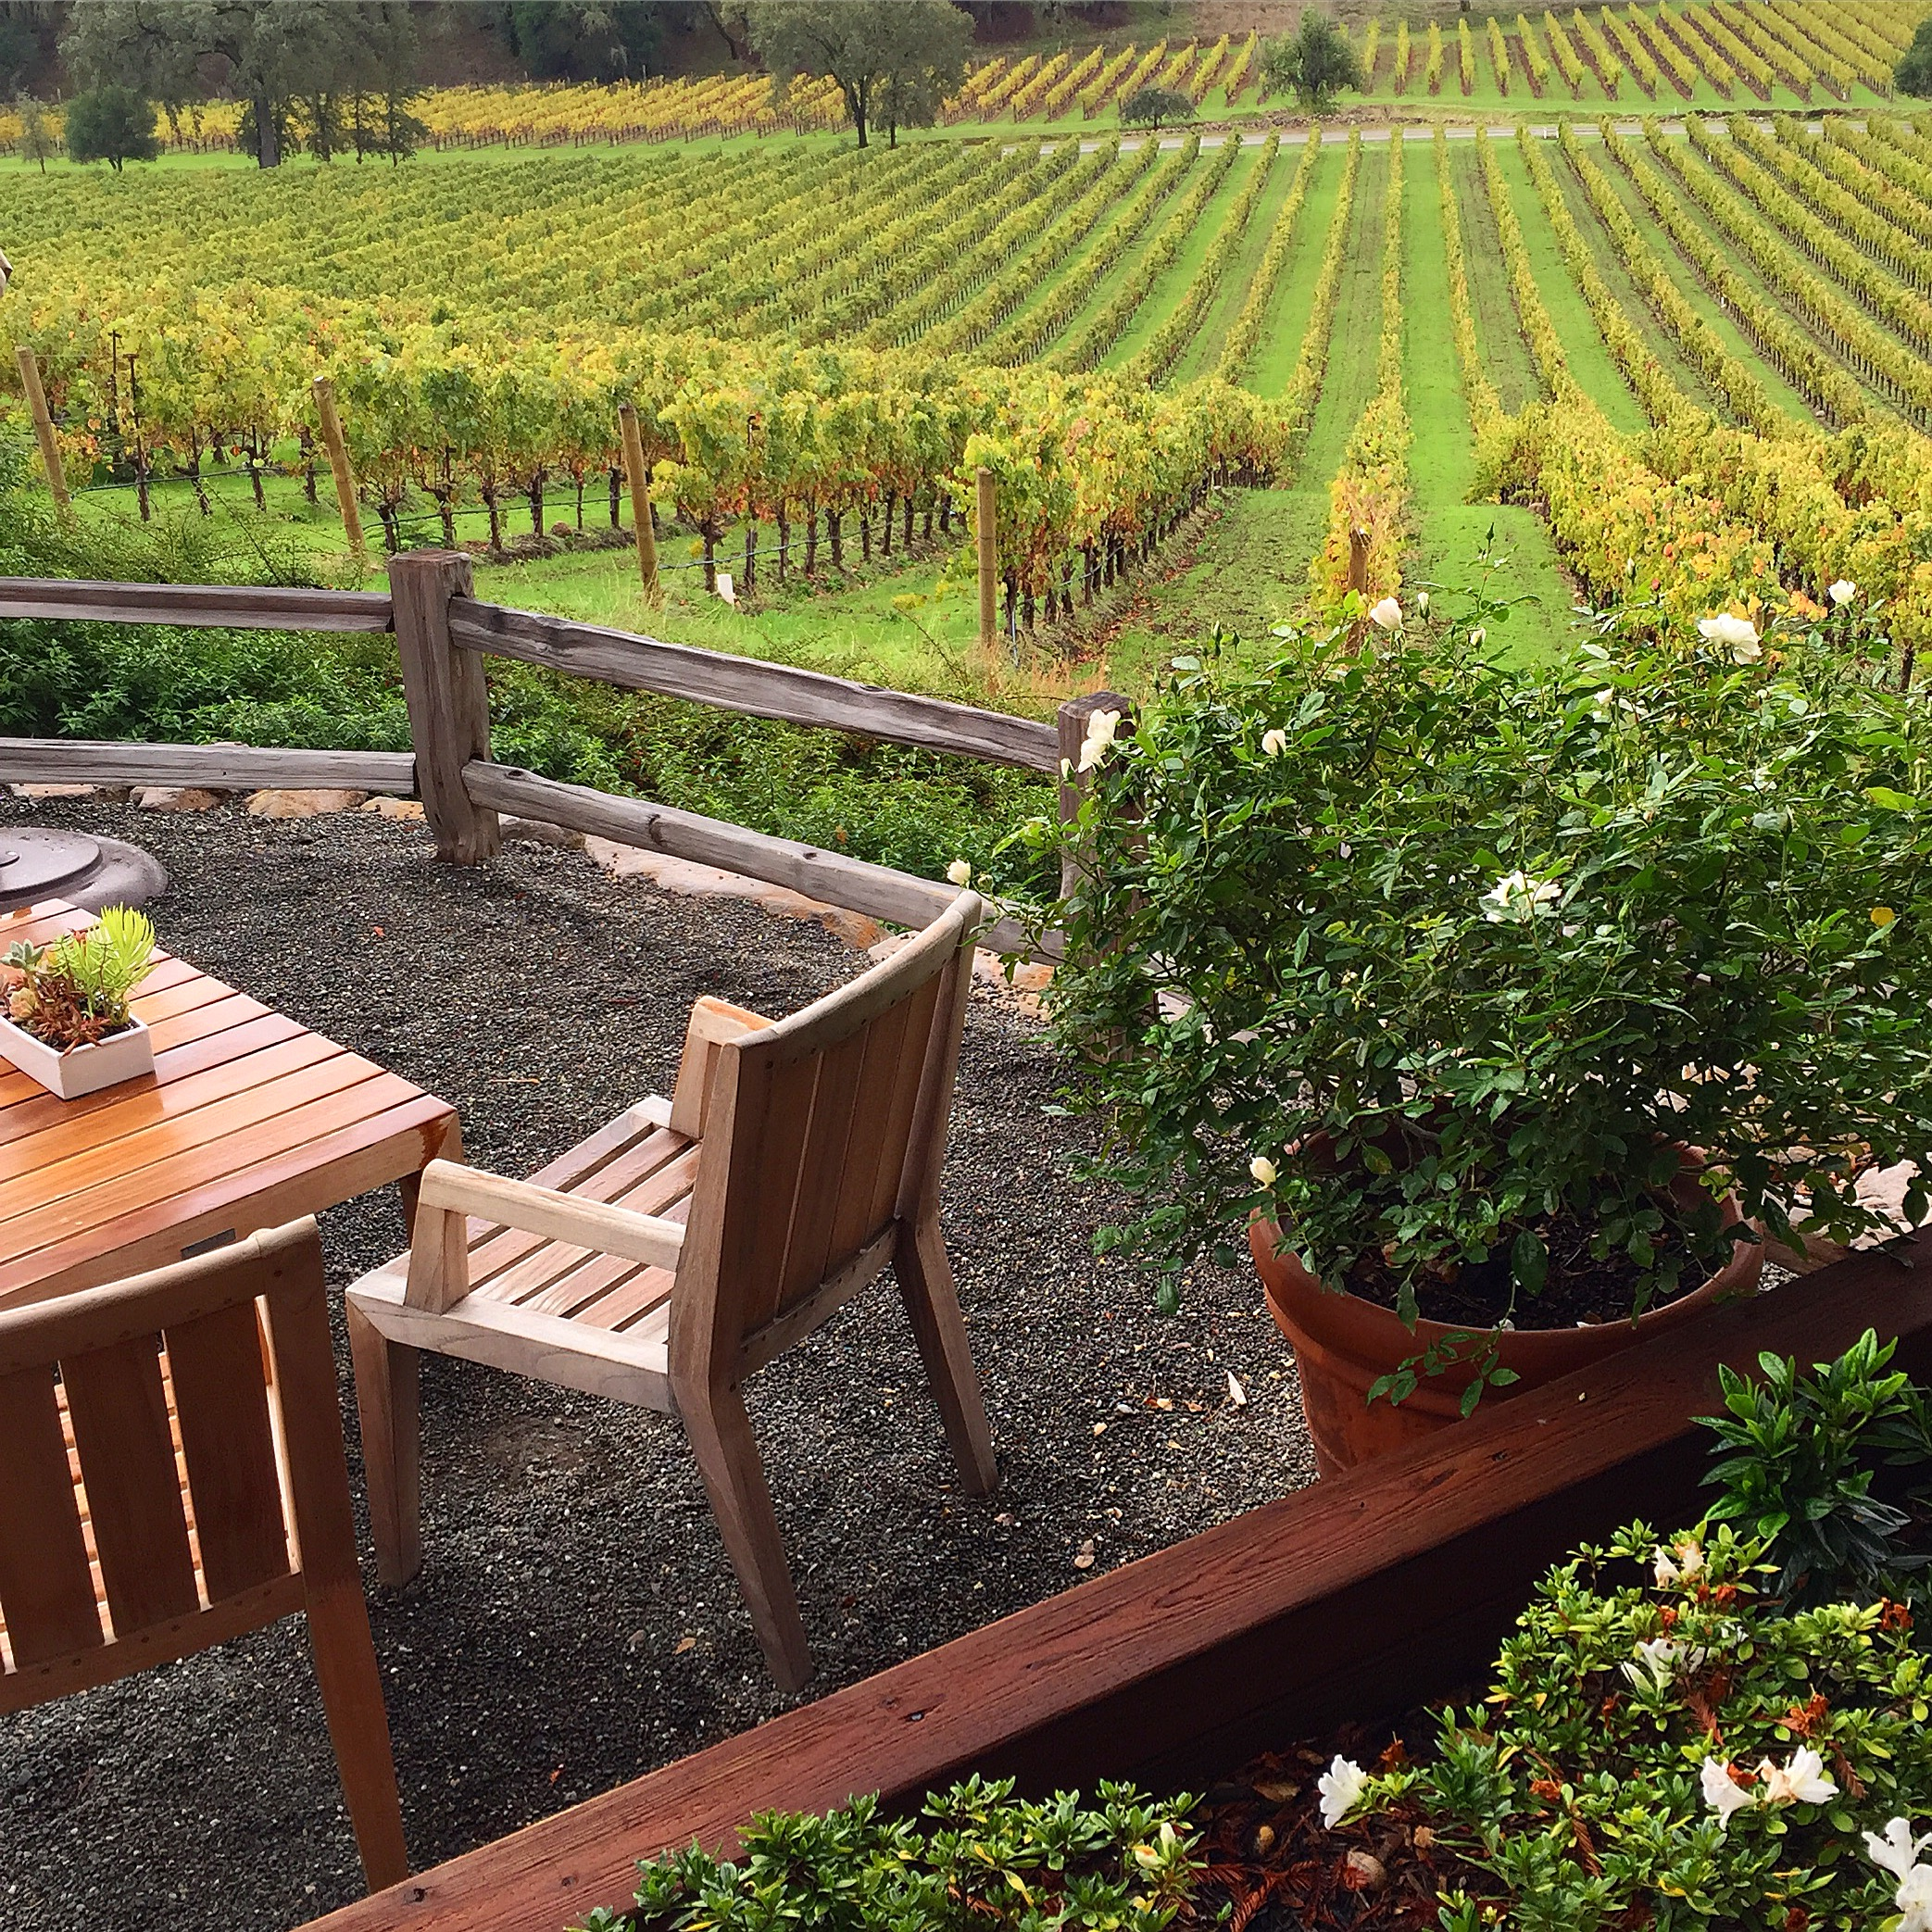 The views at Joseph Phelps Vineyards. The fall colors were starting to show and it was spectacular!